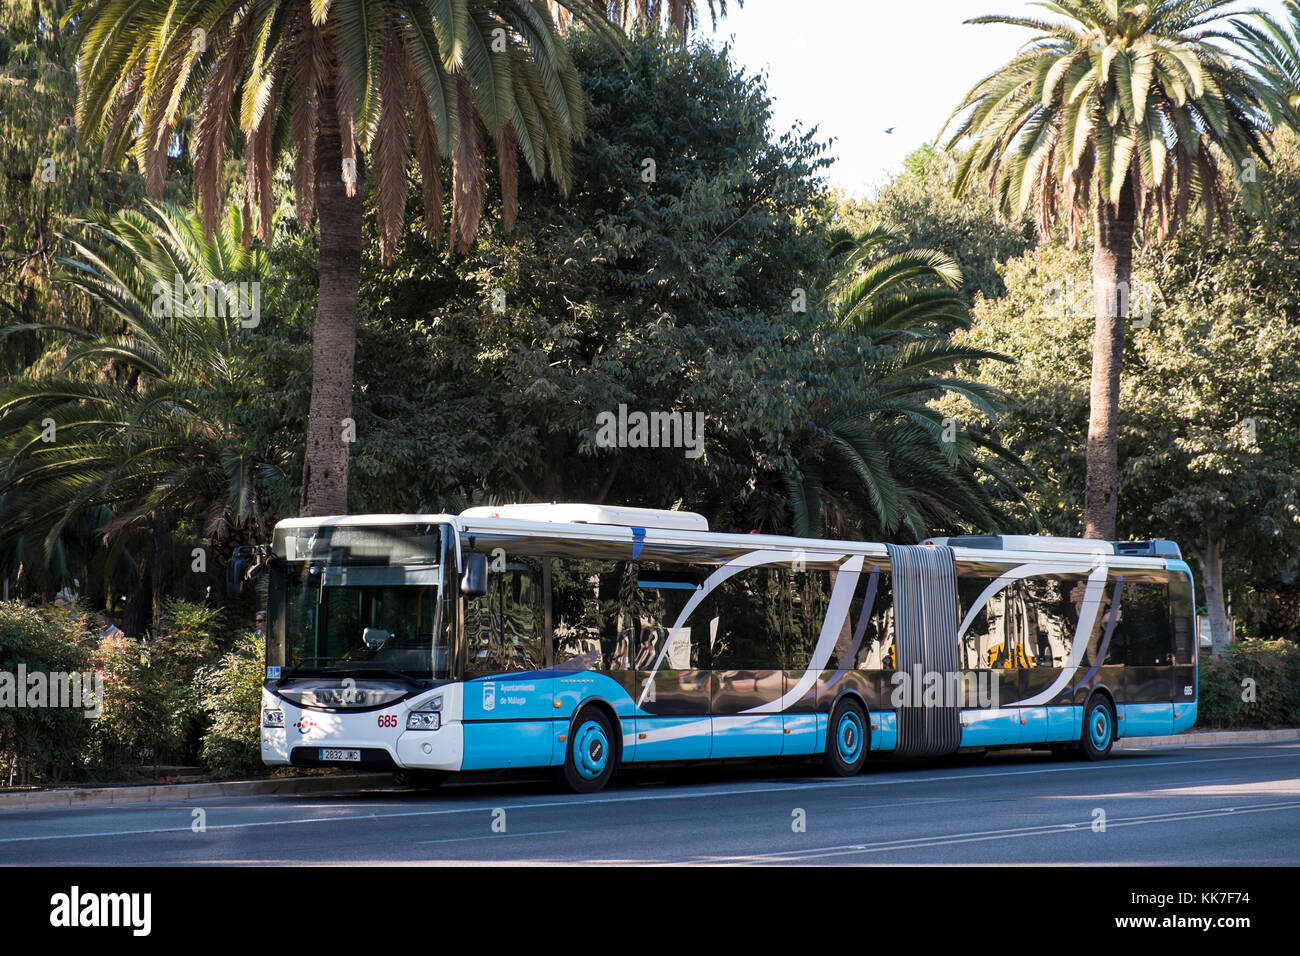 Articulated bus in Málaga. Spain. - Stock Image